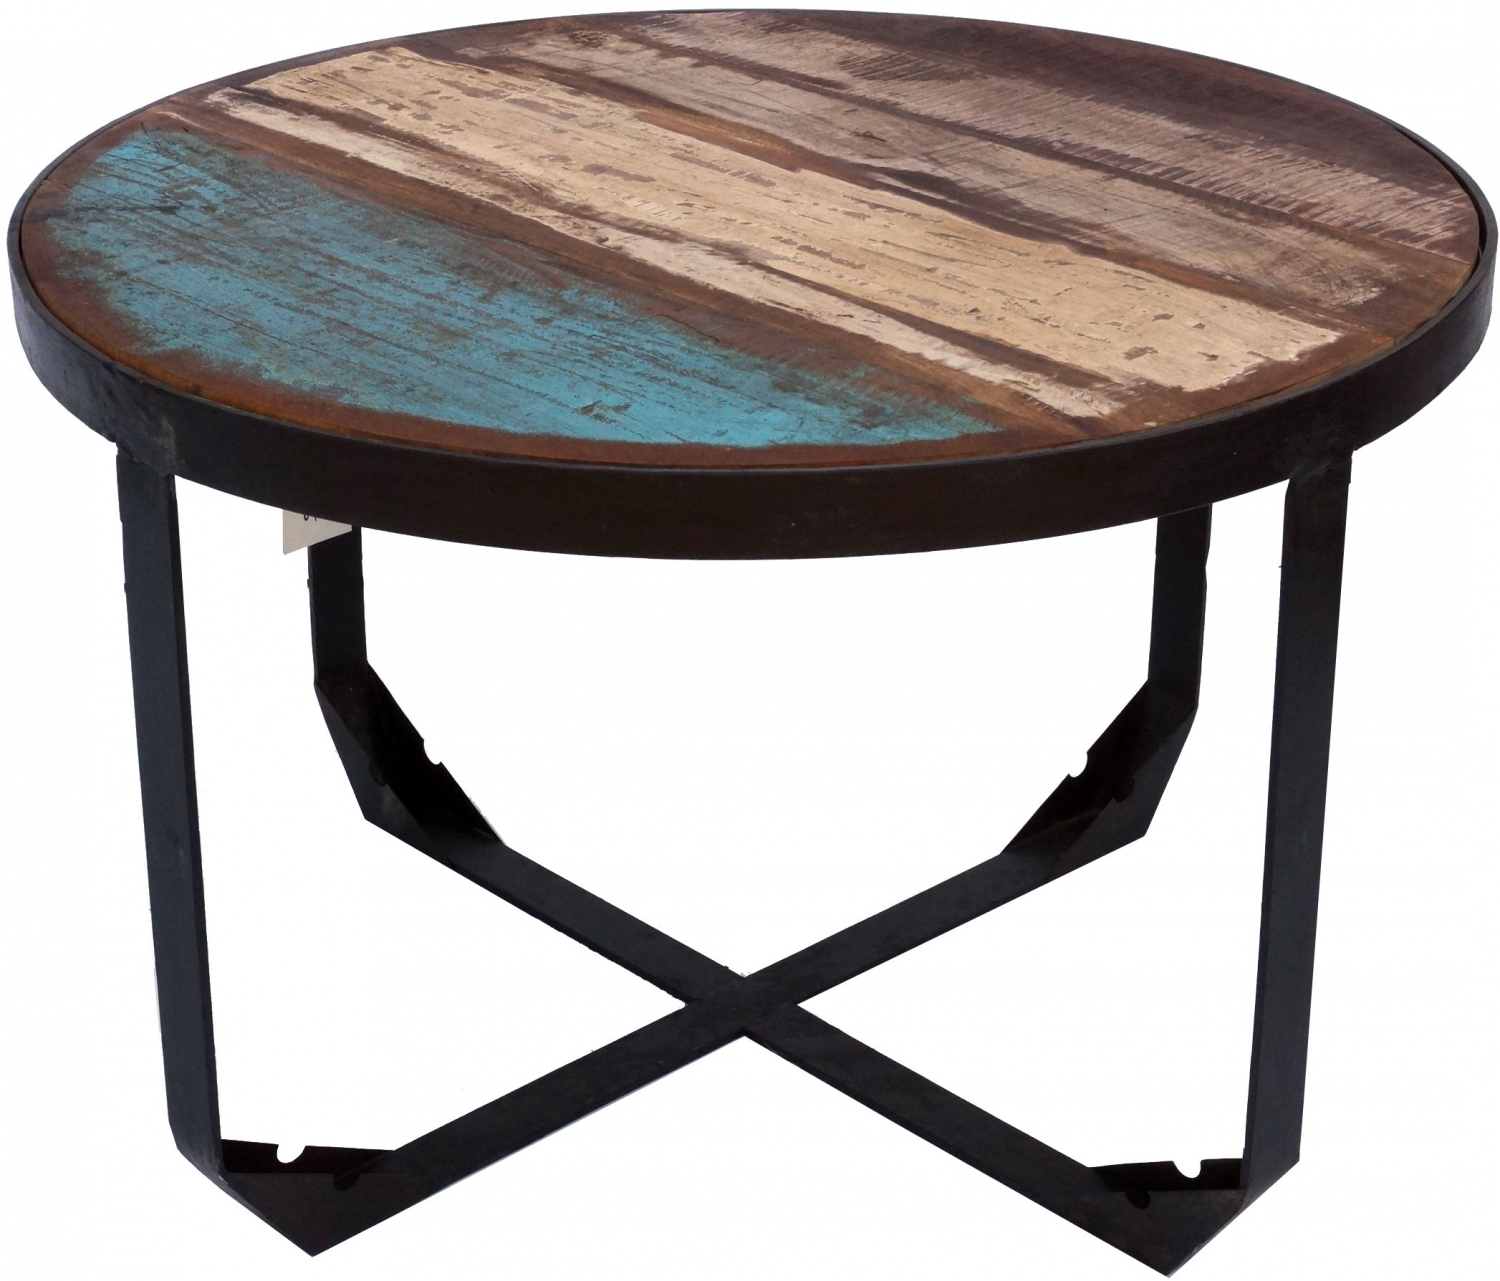 - Vintage Coffee Table, Coffee Table Made Of Metal And Recycled Wood - Model  6 - 50x75x75 Cm